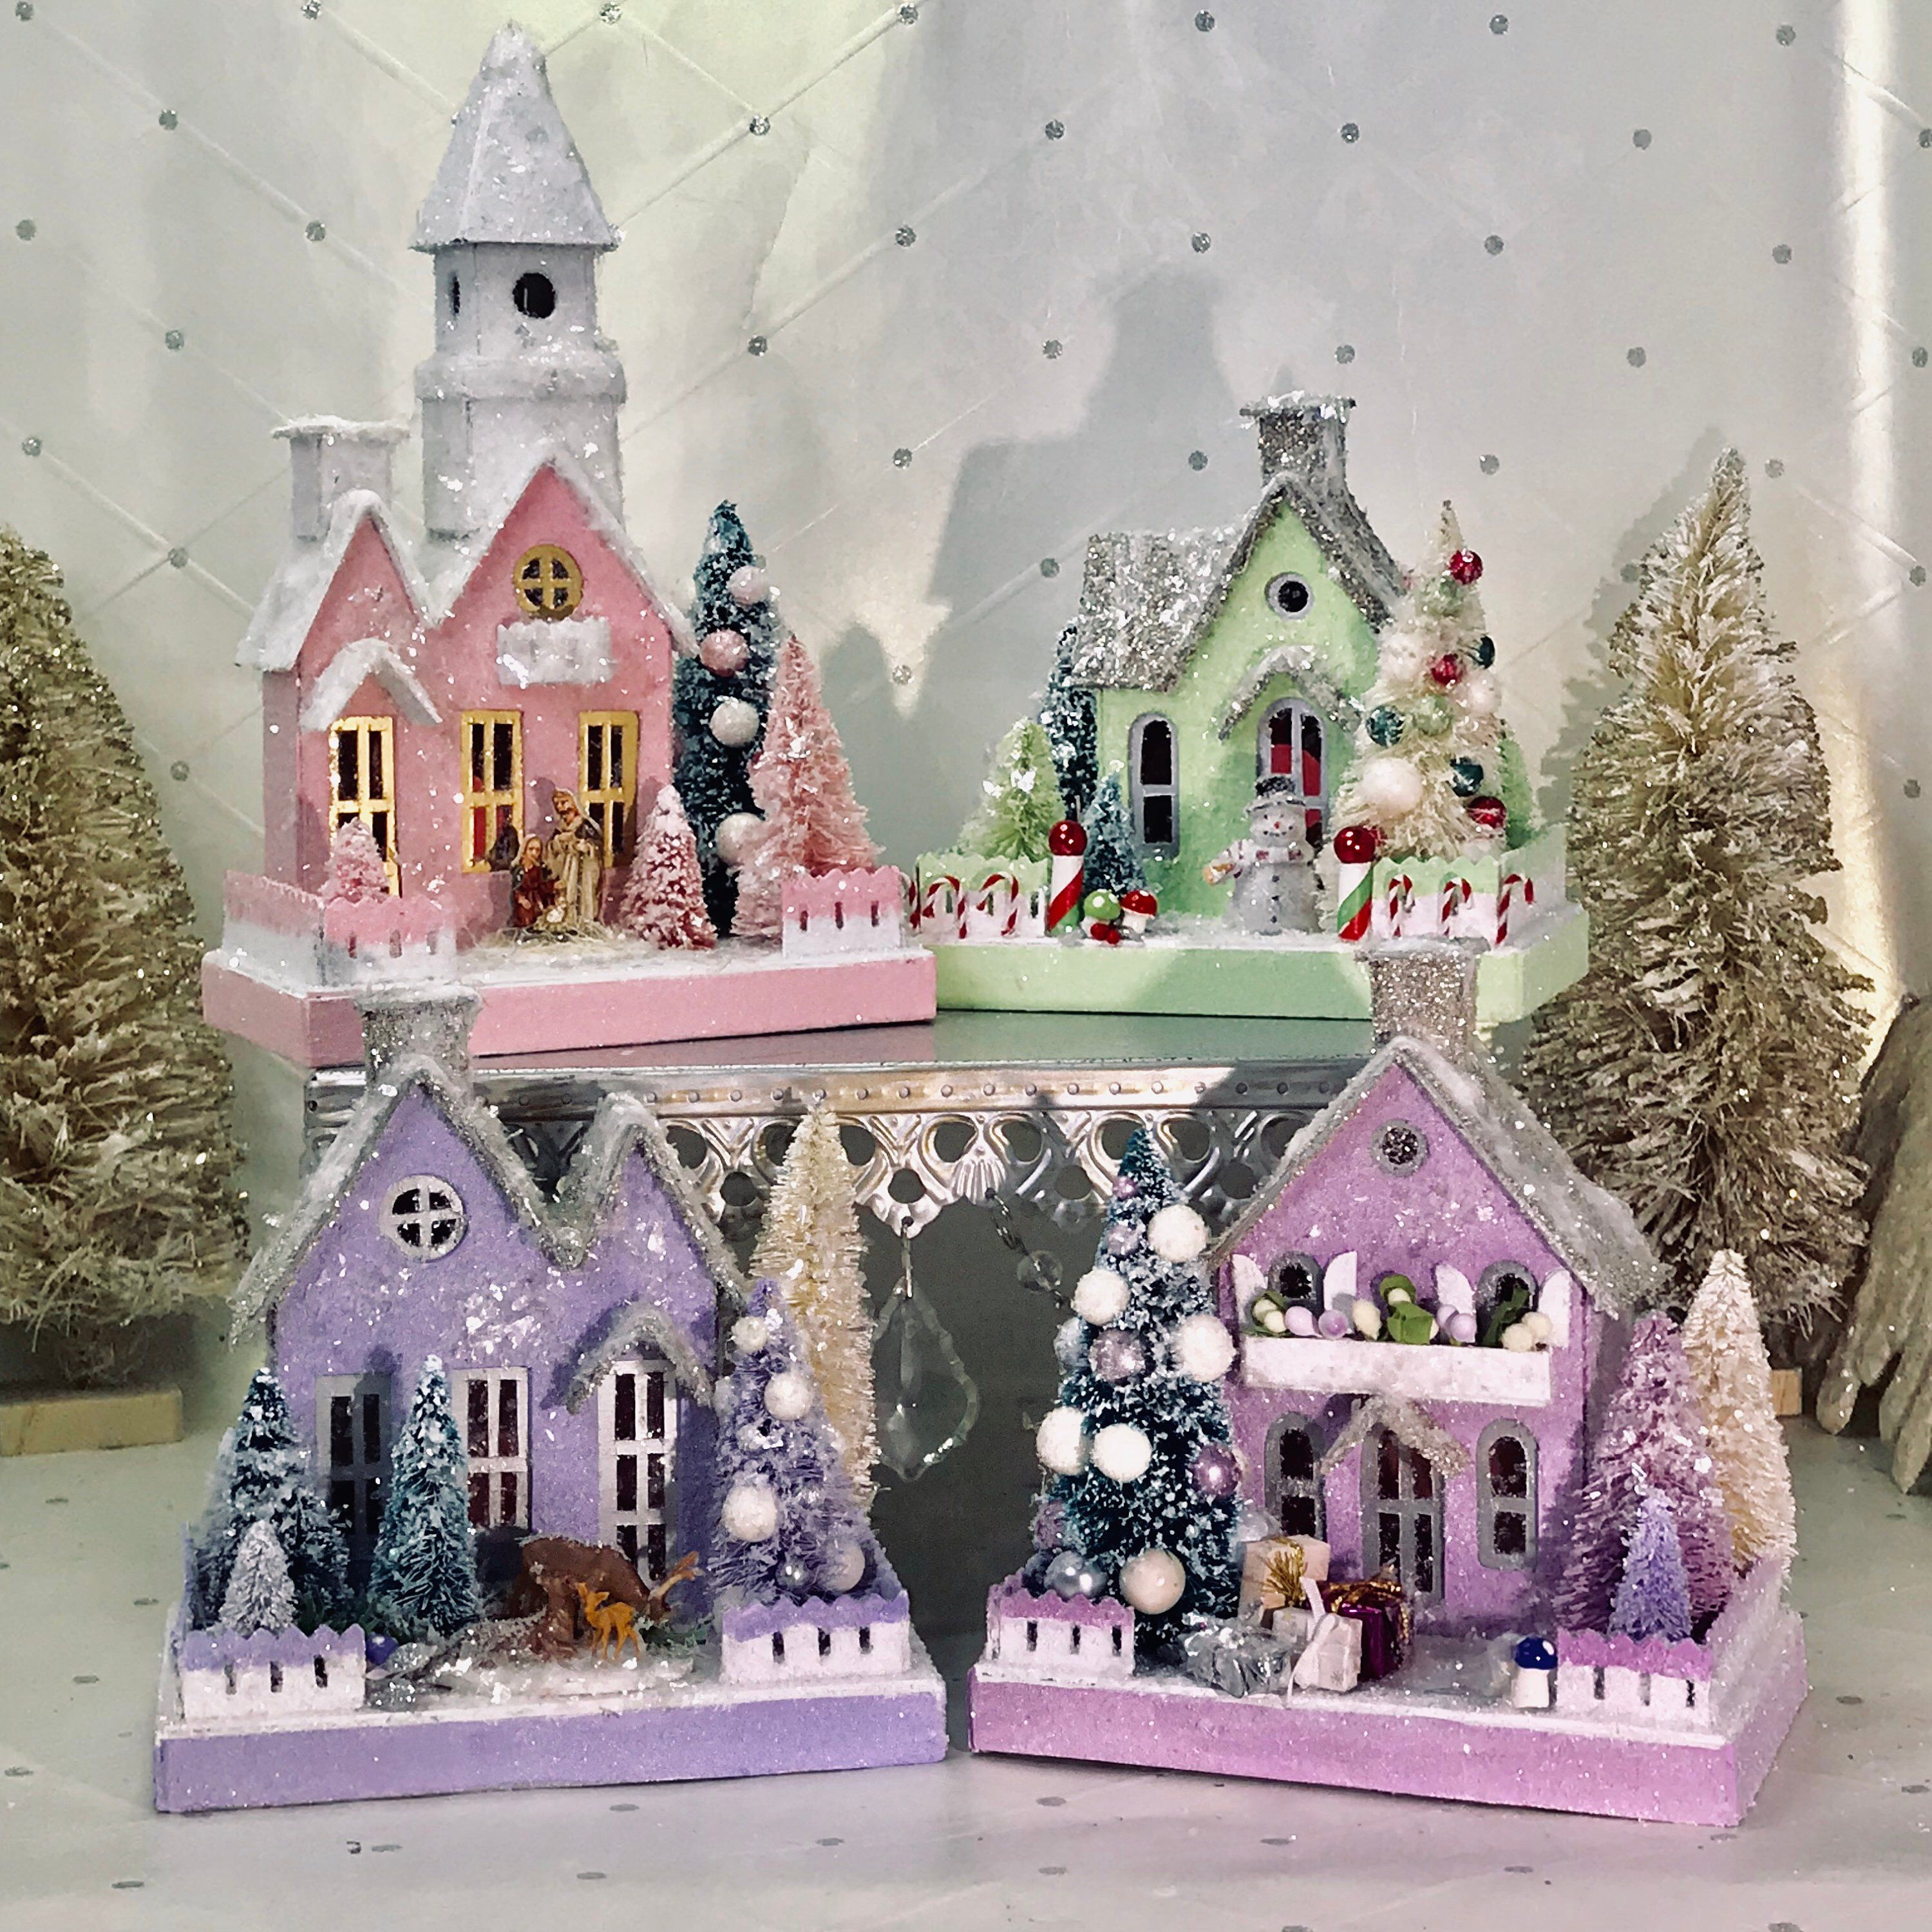 Putz Christmas Village Small Set Of 4 Houses Christmas Village Houses Office Christmas Decorations Christmas Decorations